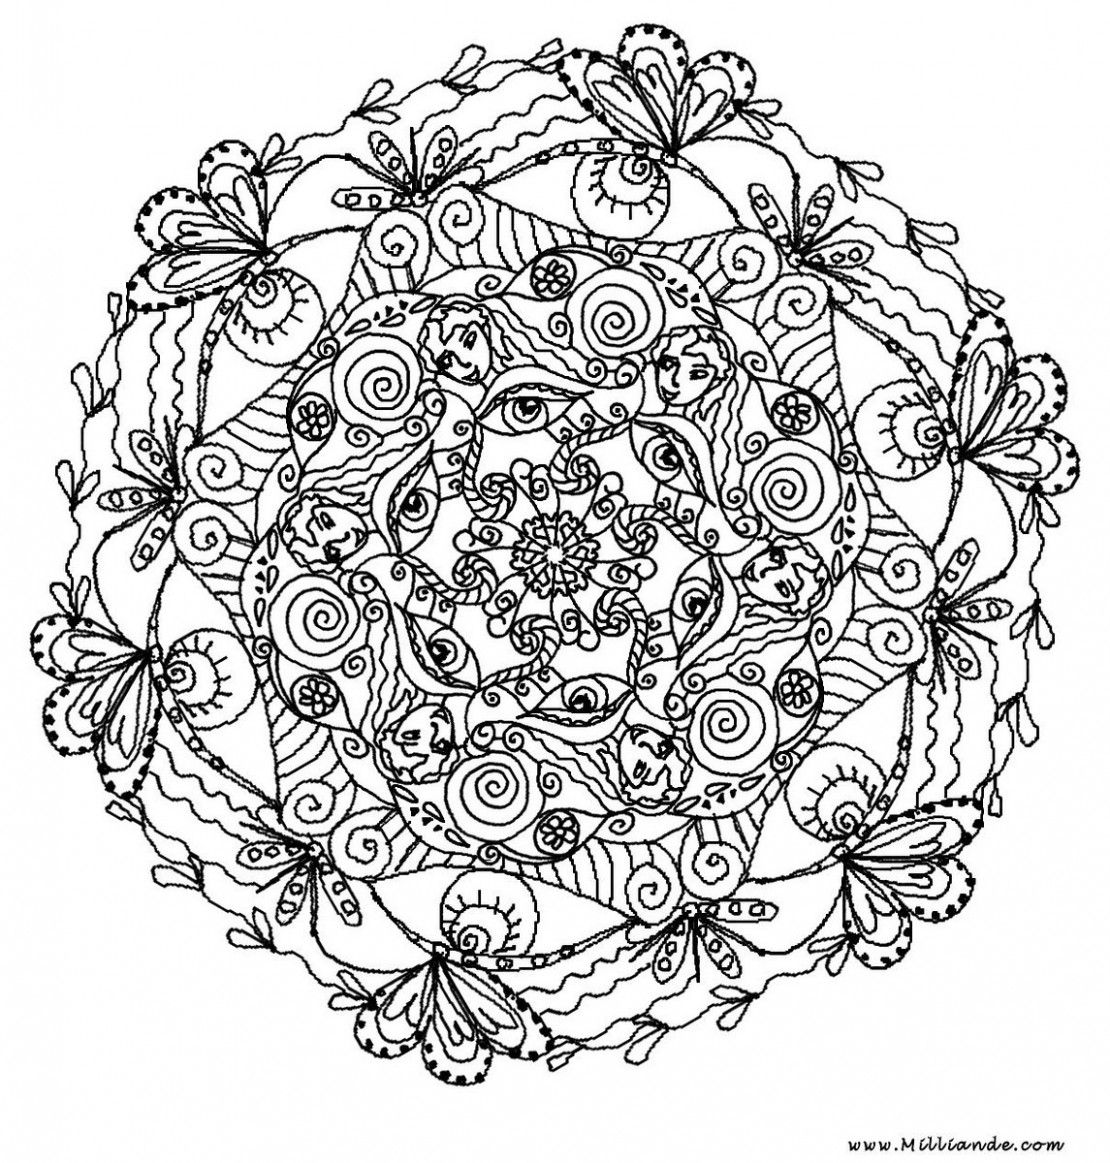 Free pages to print and color for adults - Free Printable Mandala Coloring Pages For Adults Coloring Pages